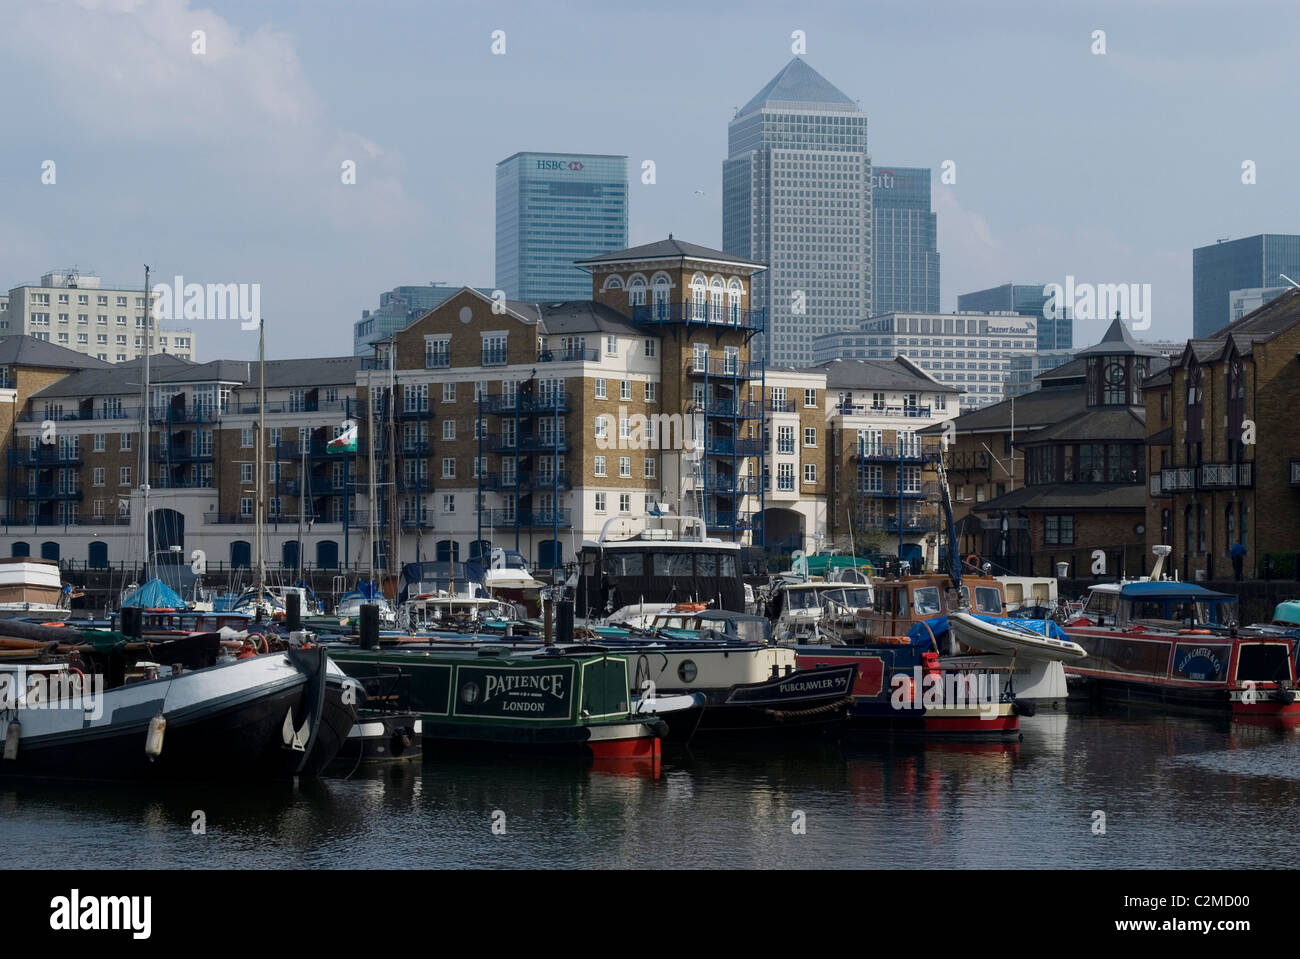 Limehouse basin and boats with view of Canary Wharf, London - Stock Image